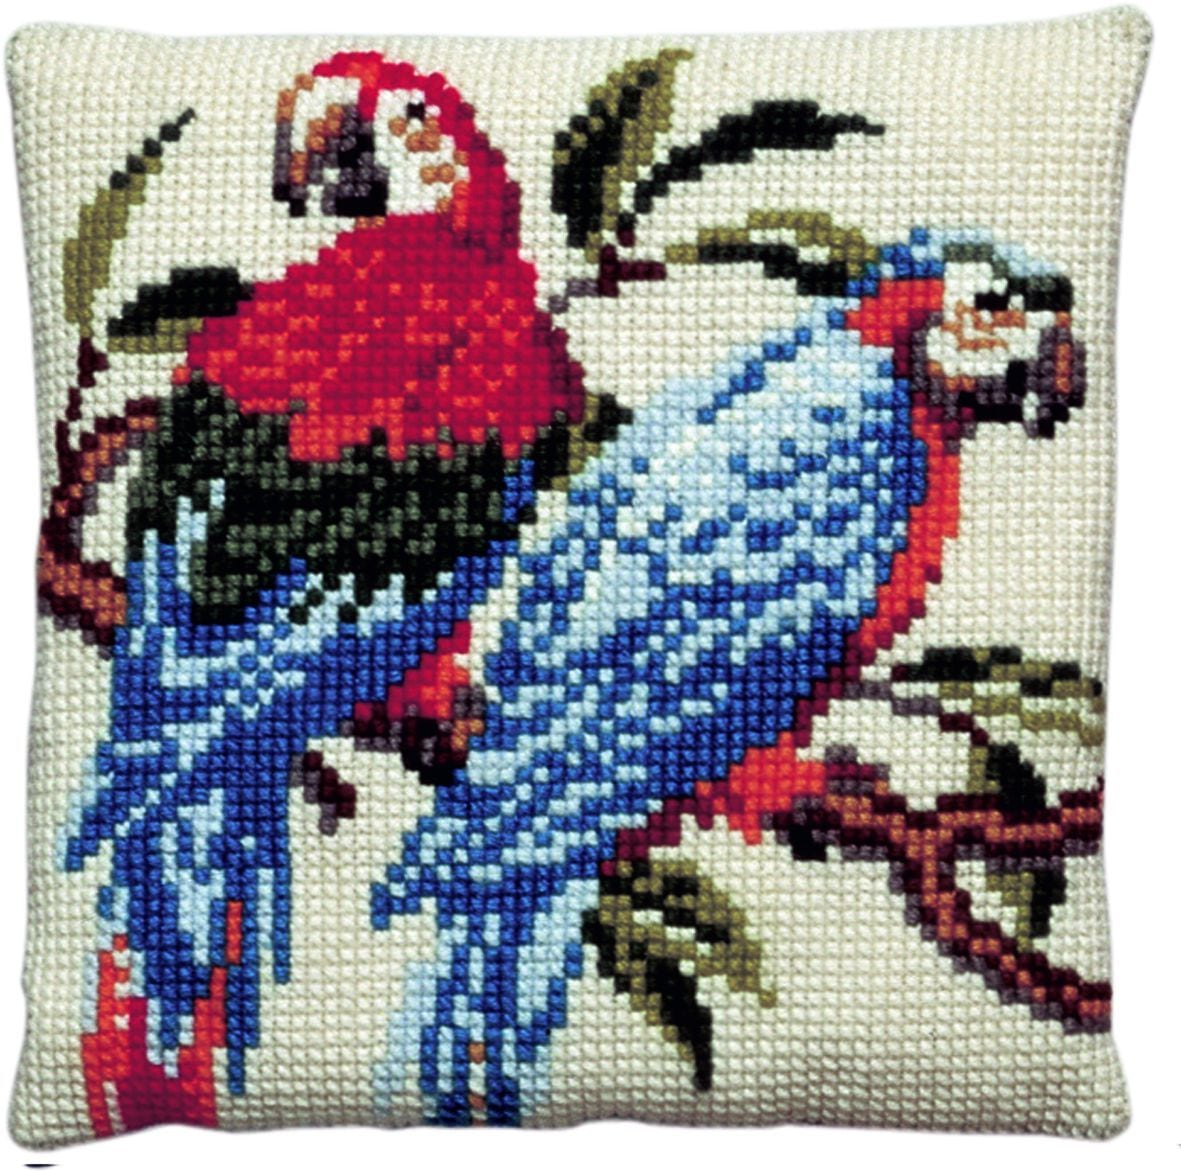 cross stitch cushion two parrots printed